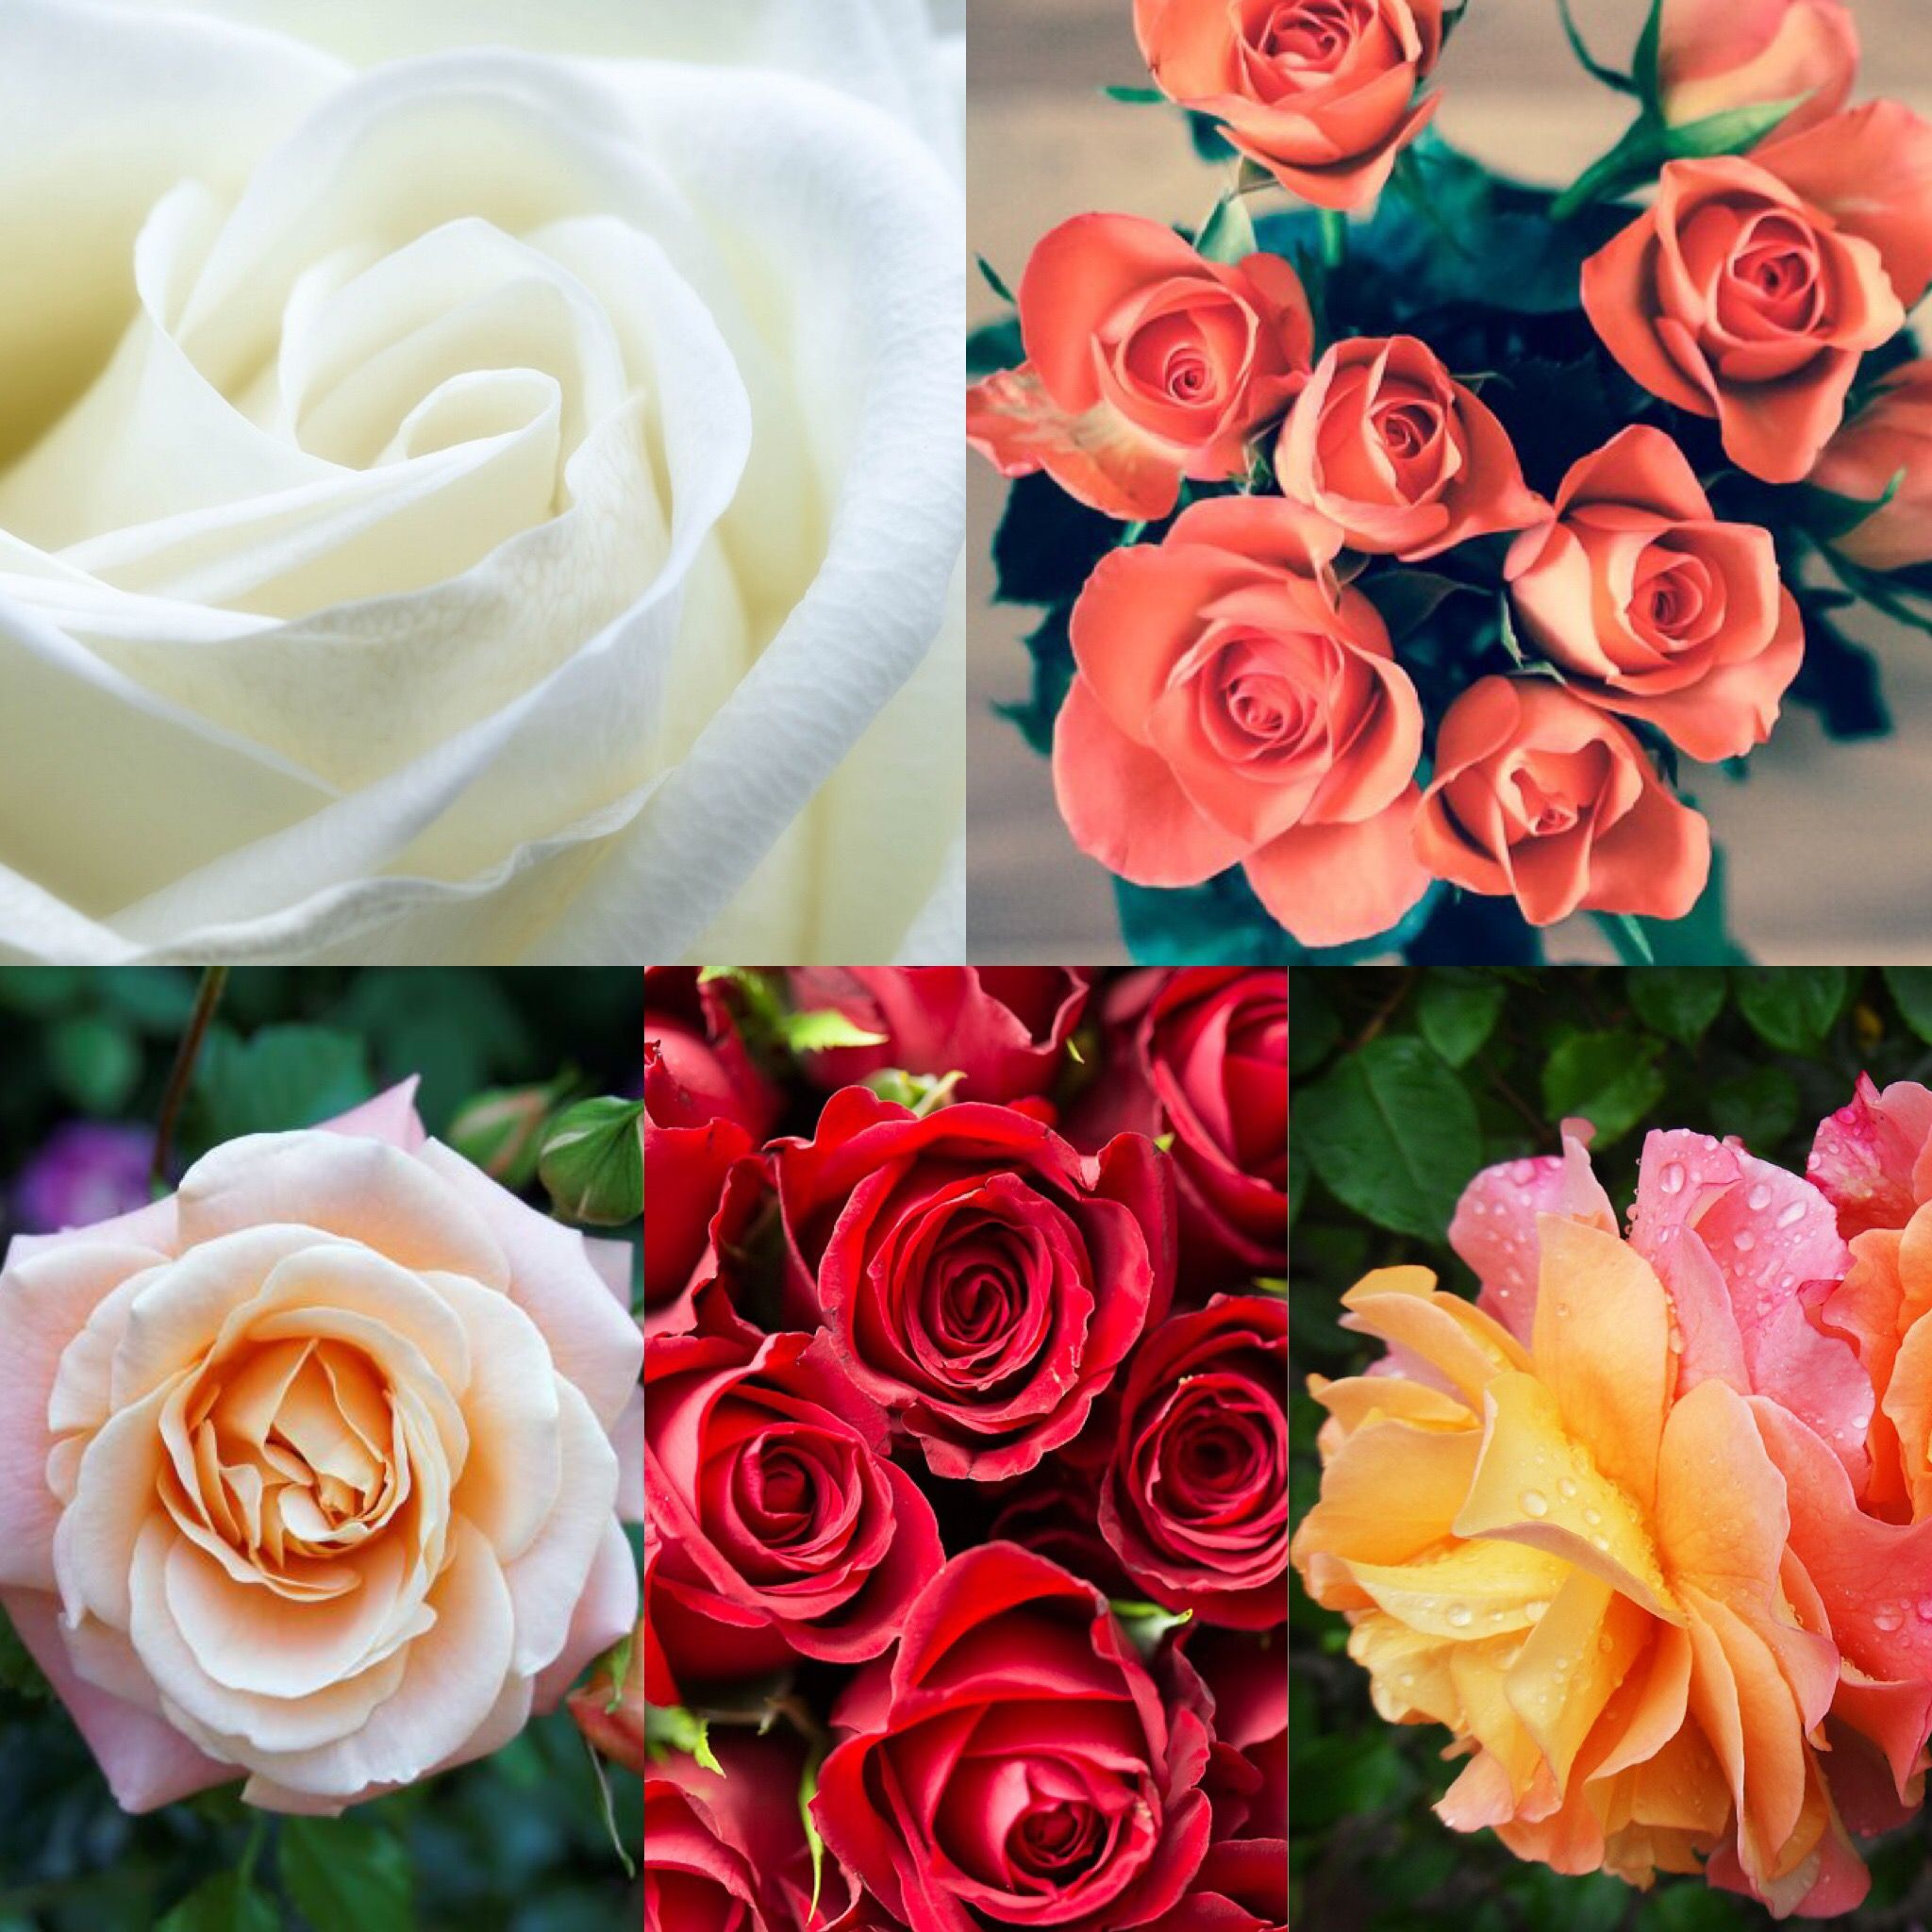 Roses Planting Growing And Pruning In 2020 Types Of Roses Garden Whimsy Organic Gardening Tips